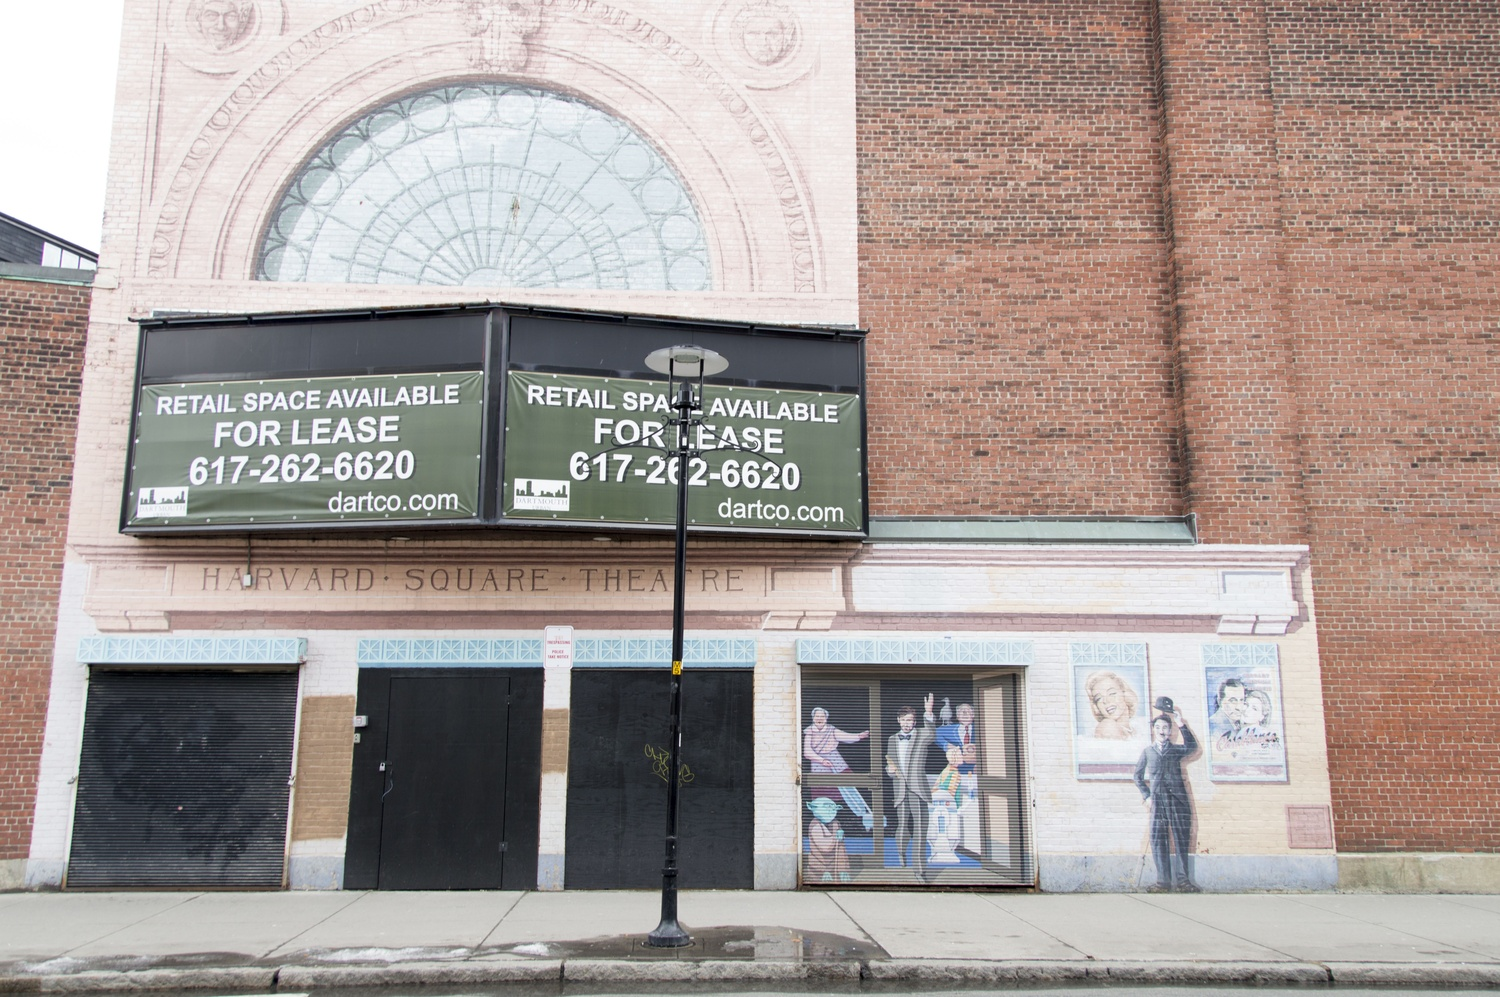 The Harvard Square Theater on Church Street advertises leasing. The brick building remains vacant years after its closing, prompting the Cambridge City Council to look into the owner's plans for its redevelopment.